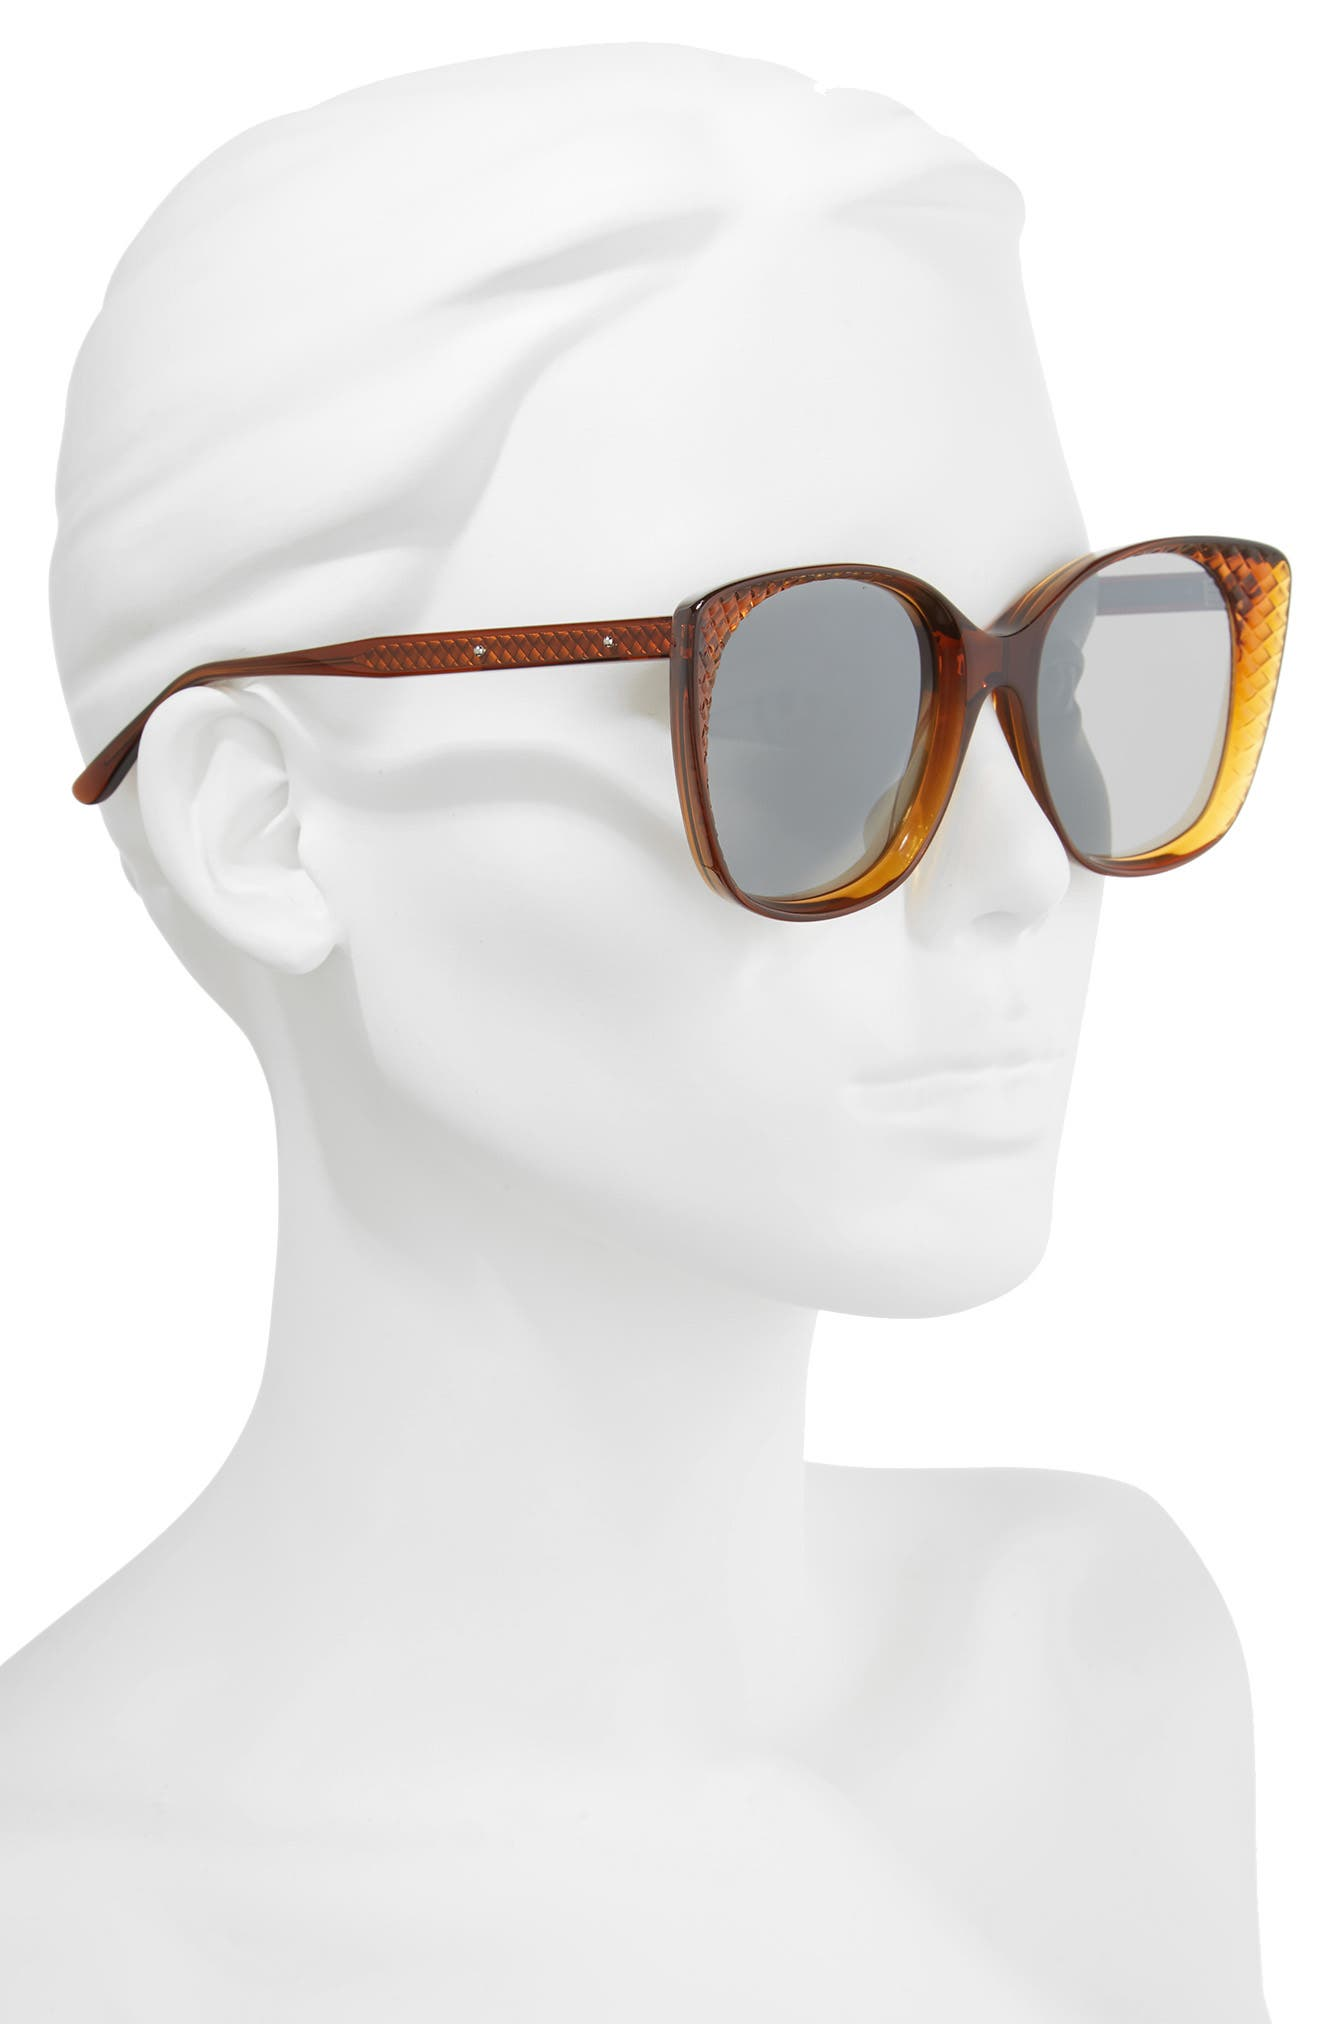 54mm Sunglasses,                             Alternate thumbnail 2, color,                             Chocolate Brown